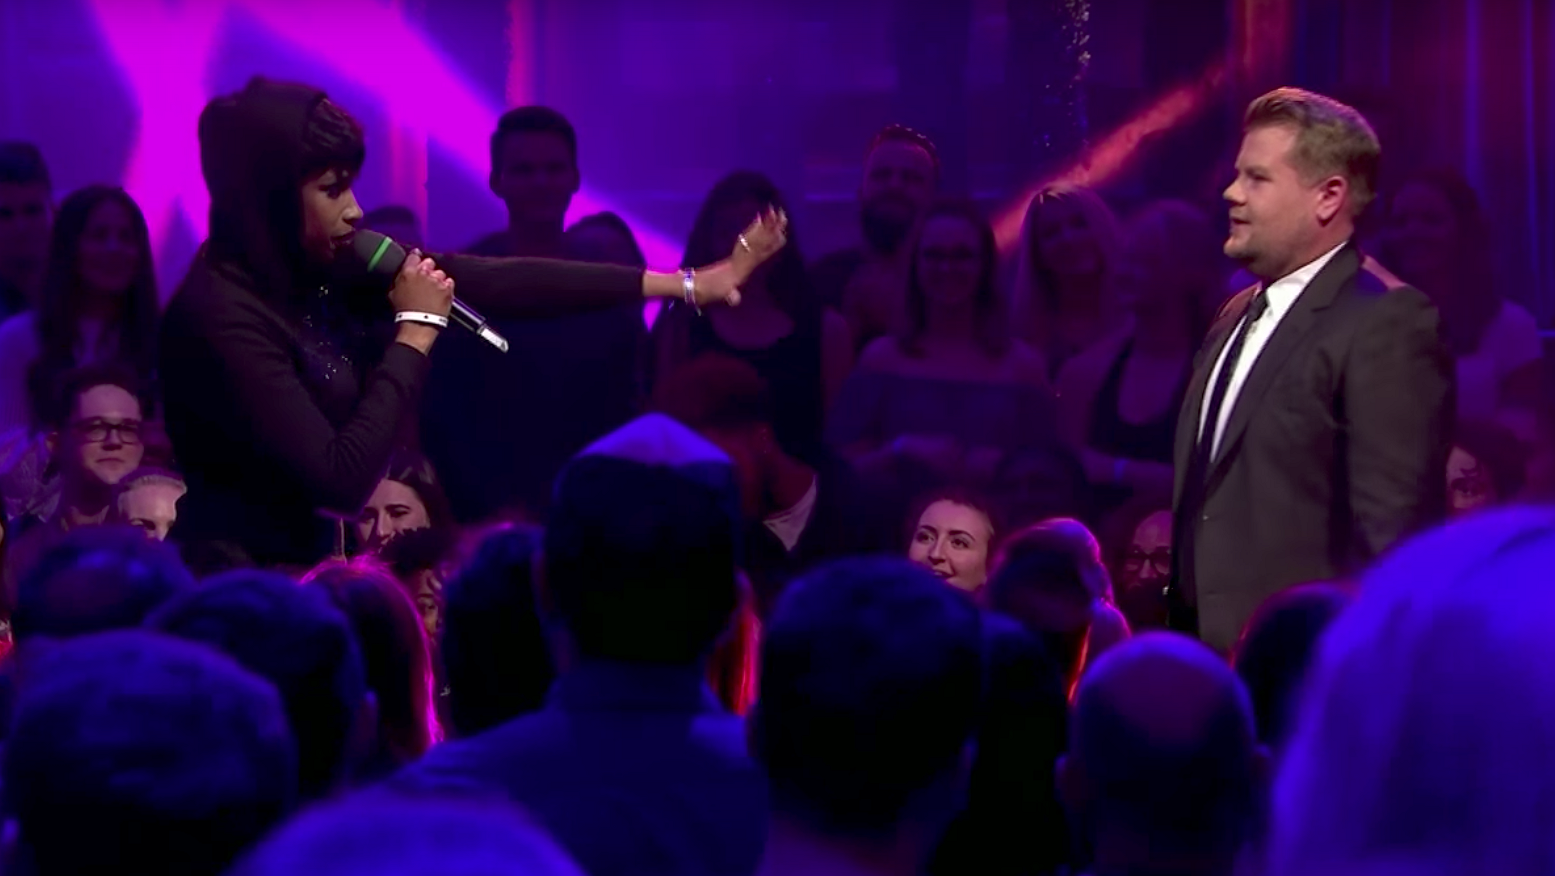 Jennifer Hudson zet James Corden op z'n plek in rap-battle